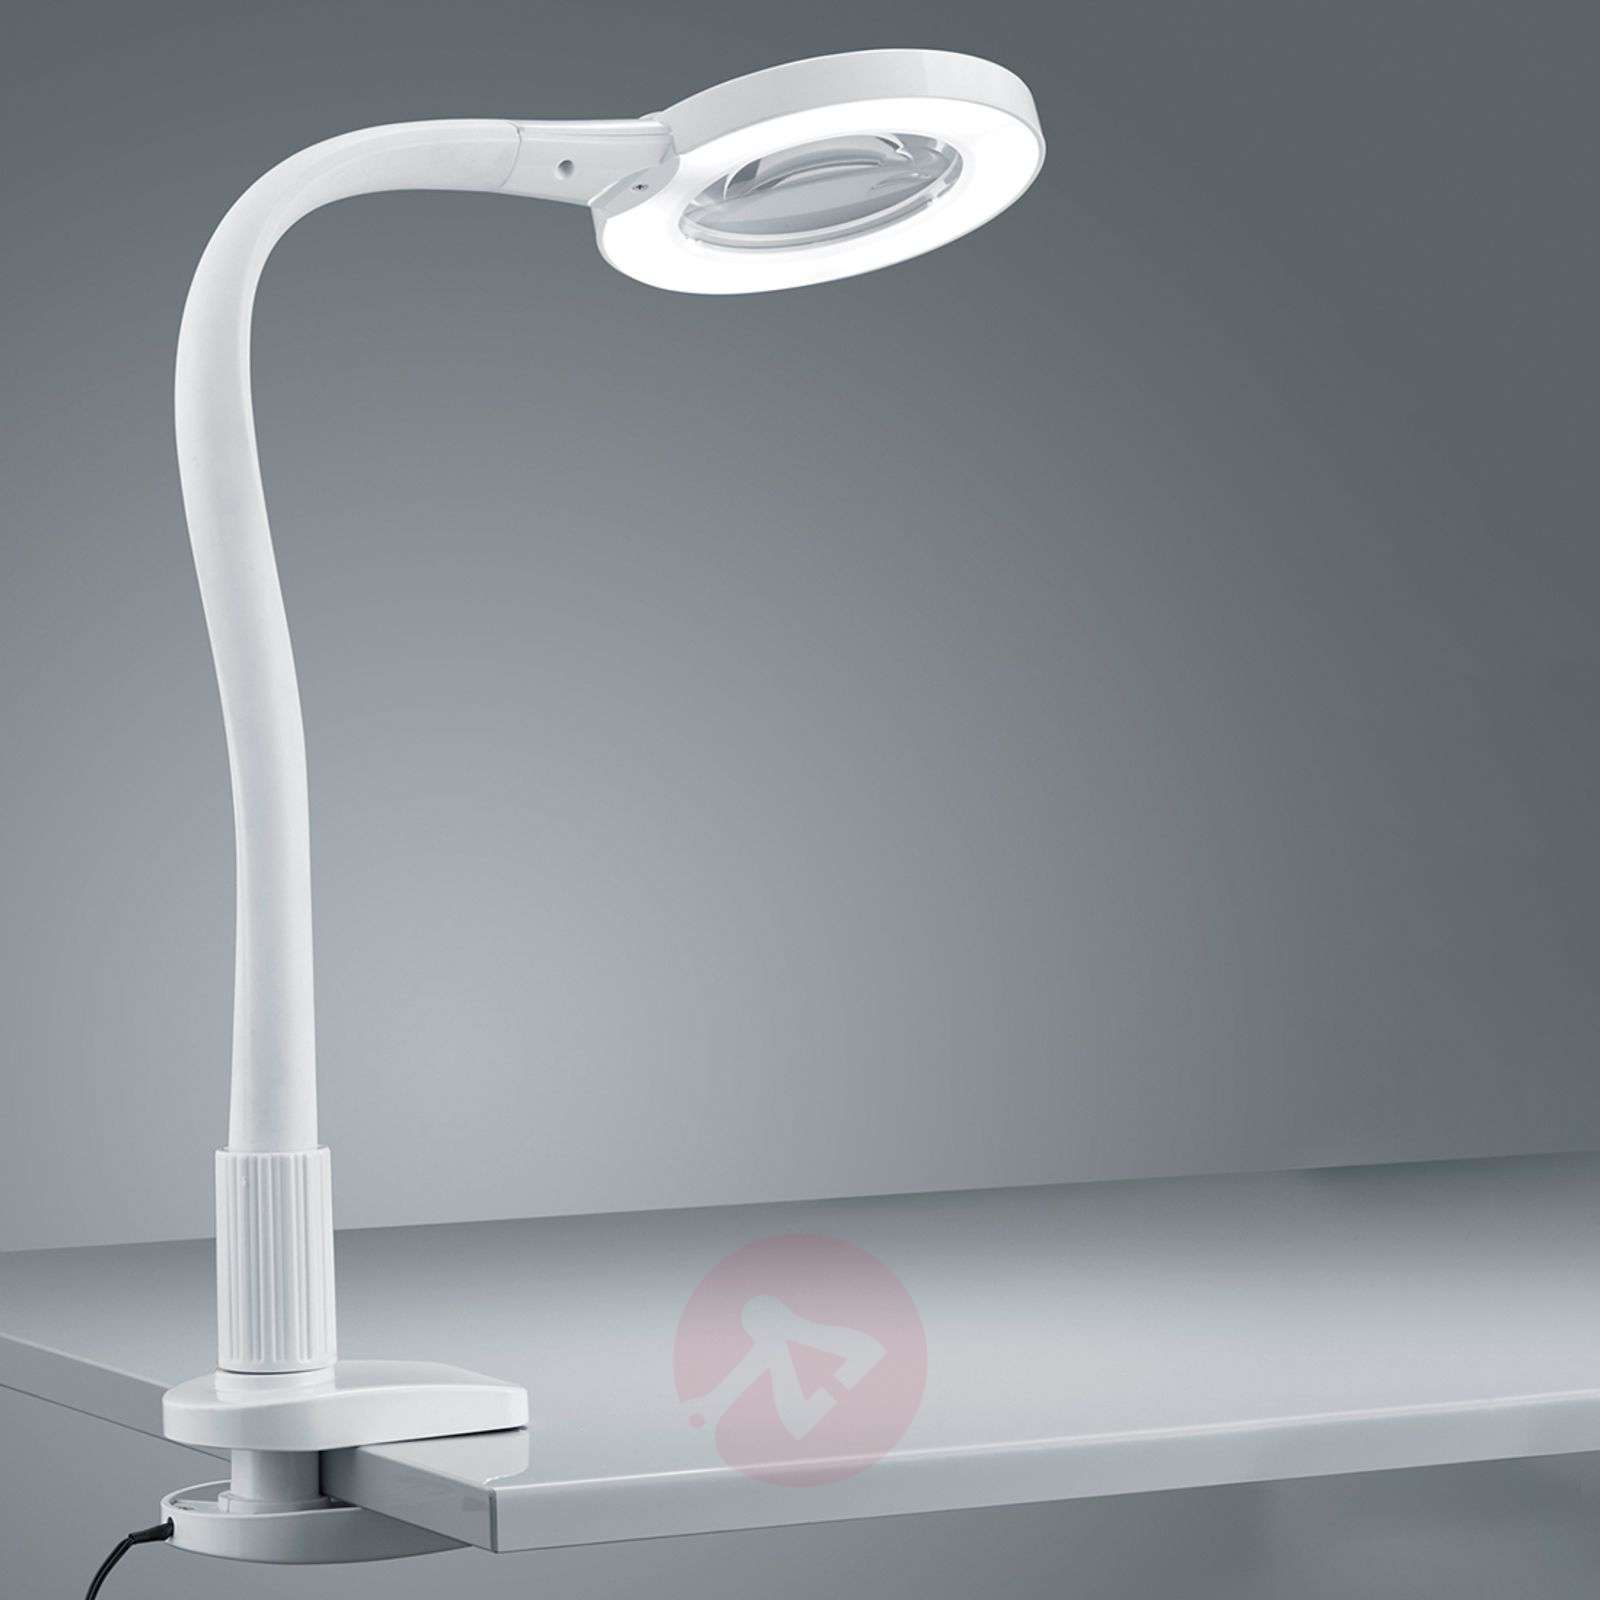 In wit LED vergrootglas klemlamp Lupo-9005195-01